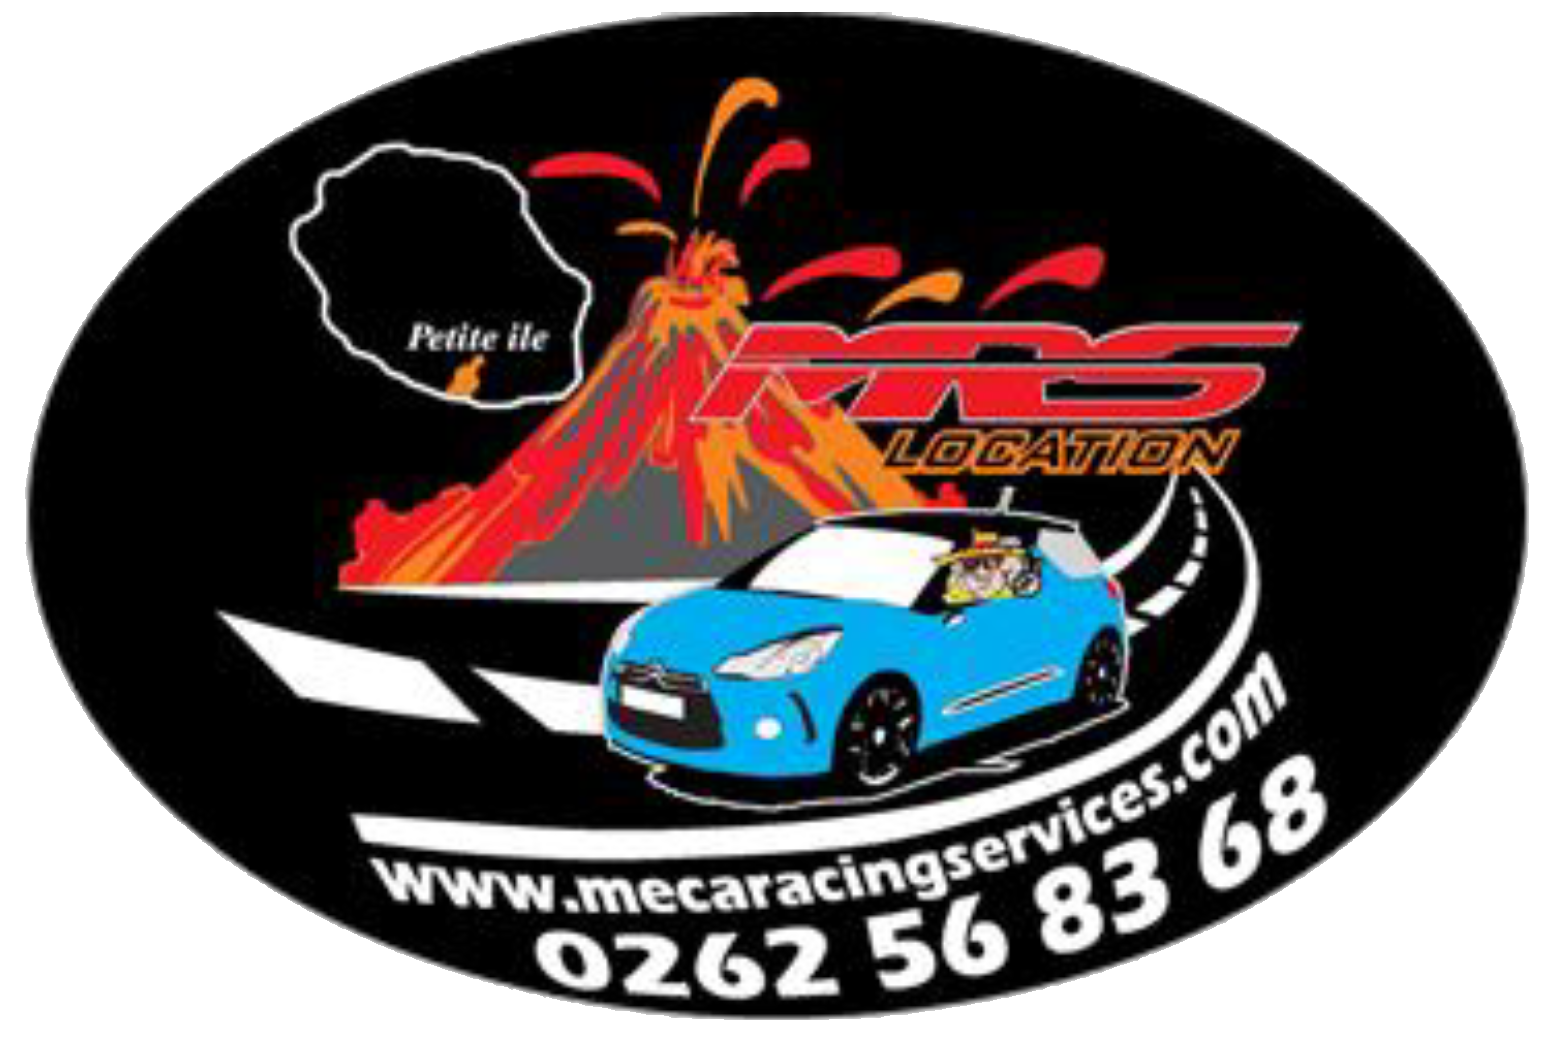 SARL MECA RACING SERVICES LOCATION